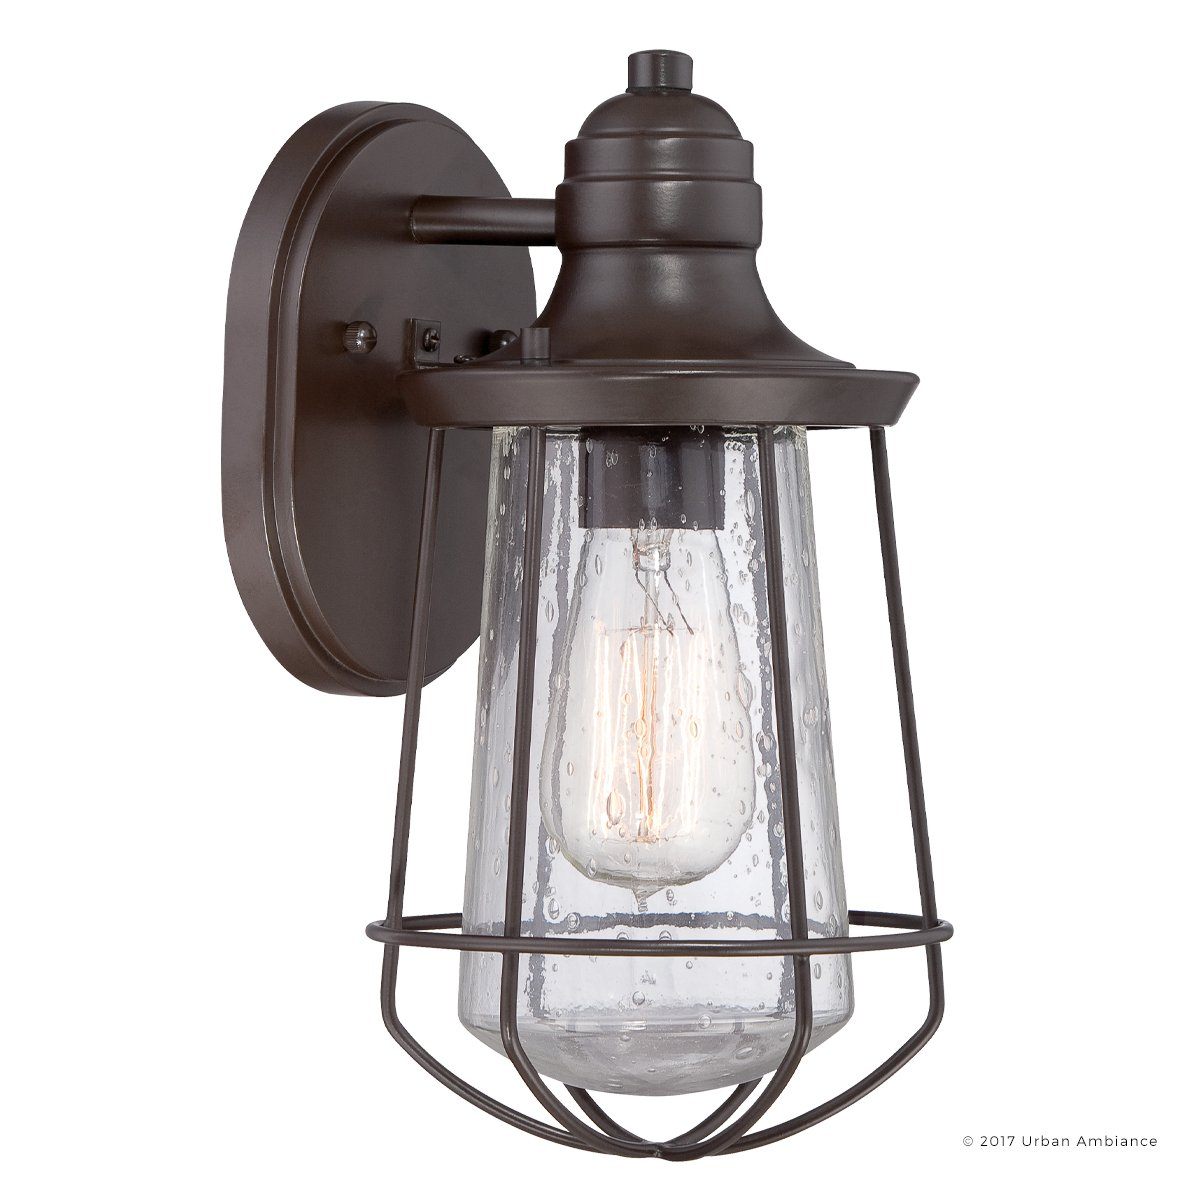 Luxury Vintage Outdoor Wall Light, Small Size: 11.25''H x 6.25''W, with Nautical Style Elements, Cage Design, Estate Bronze Finish and Seeded Glass, Includes Edison Bulb, UQL1120 by Urban Ambiance